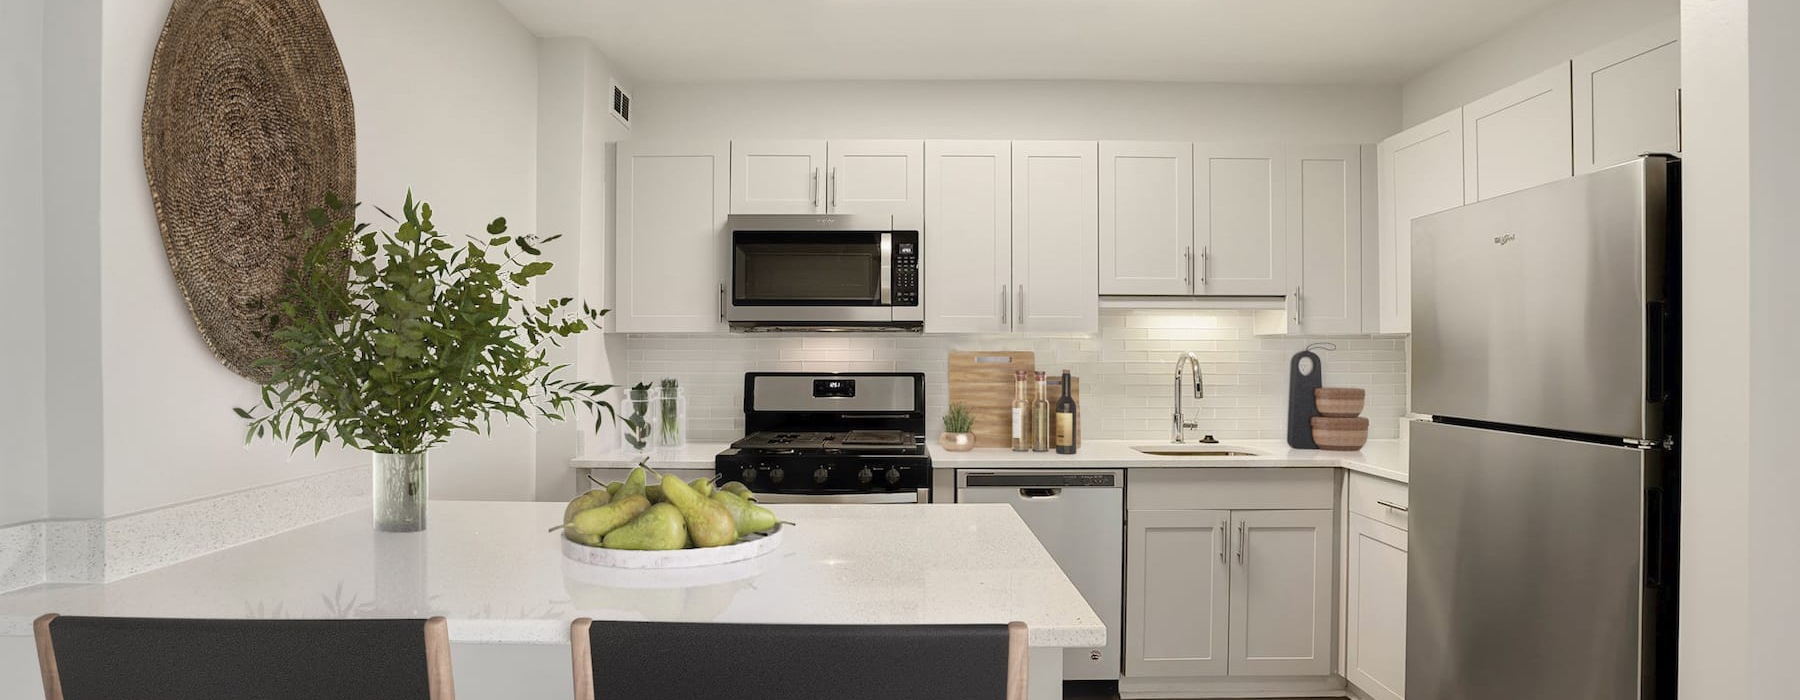 Luxury, furnished kitchen with tile backboard, island dining table with counter seating, and stainless steel appliances